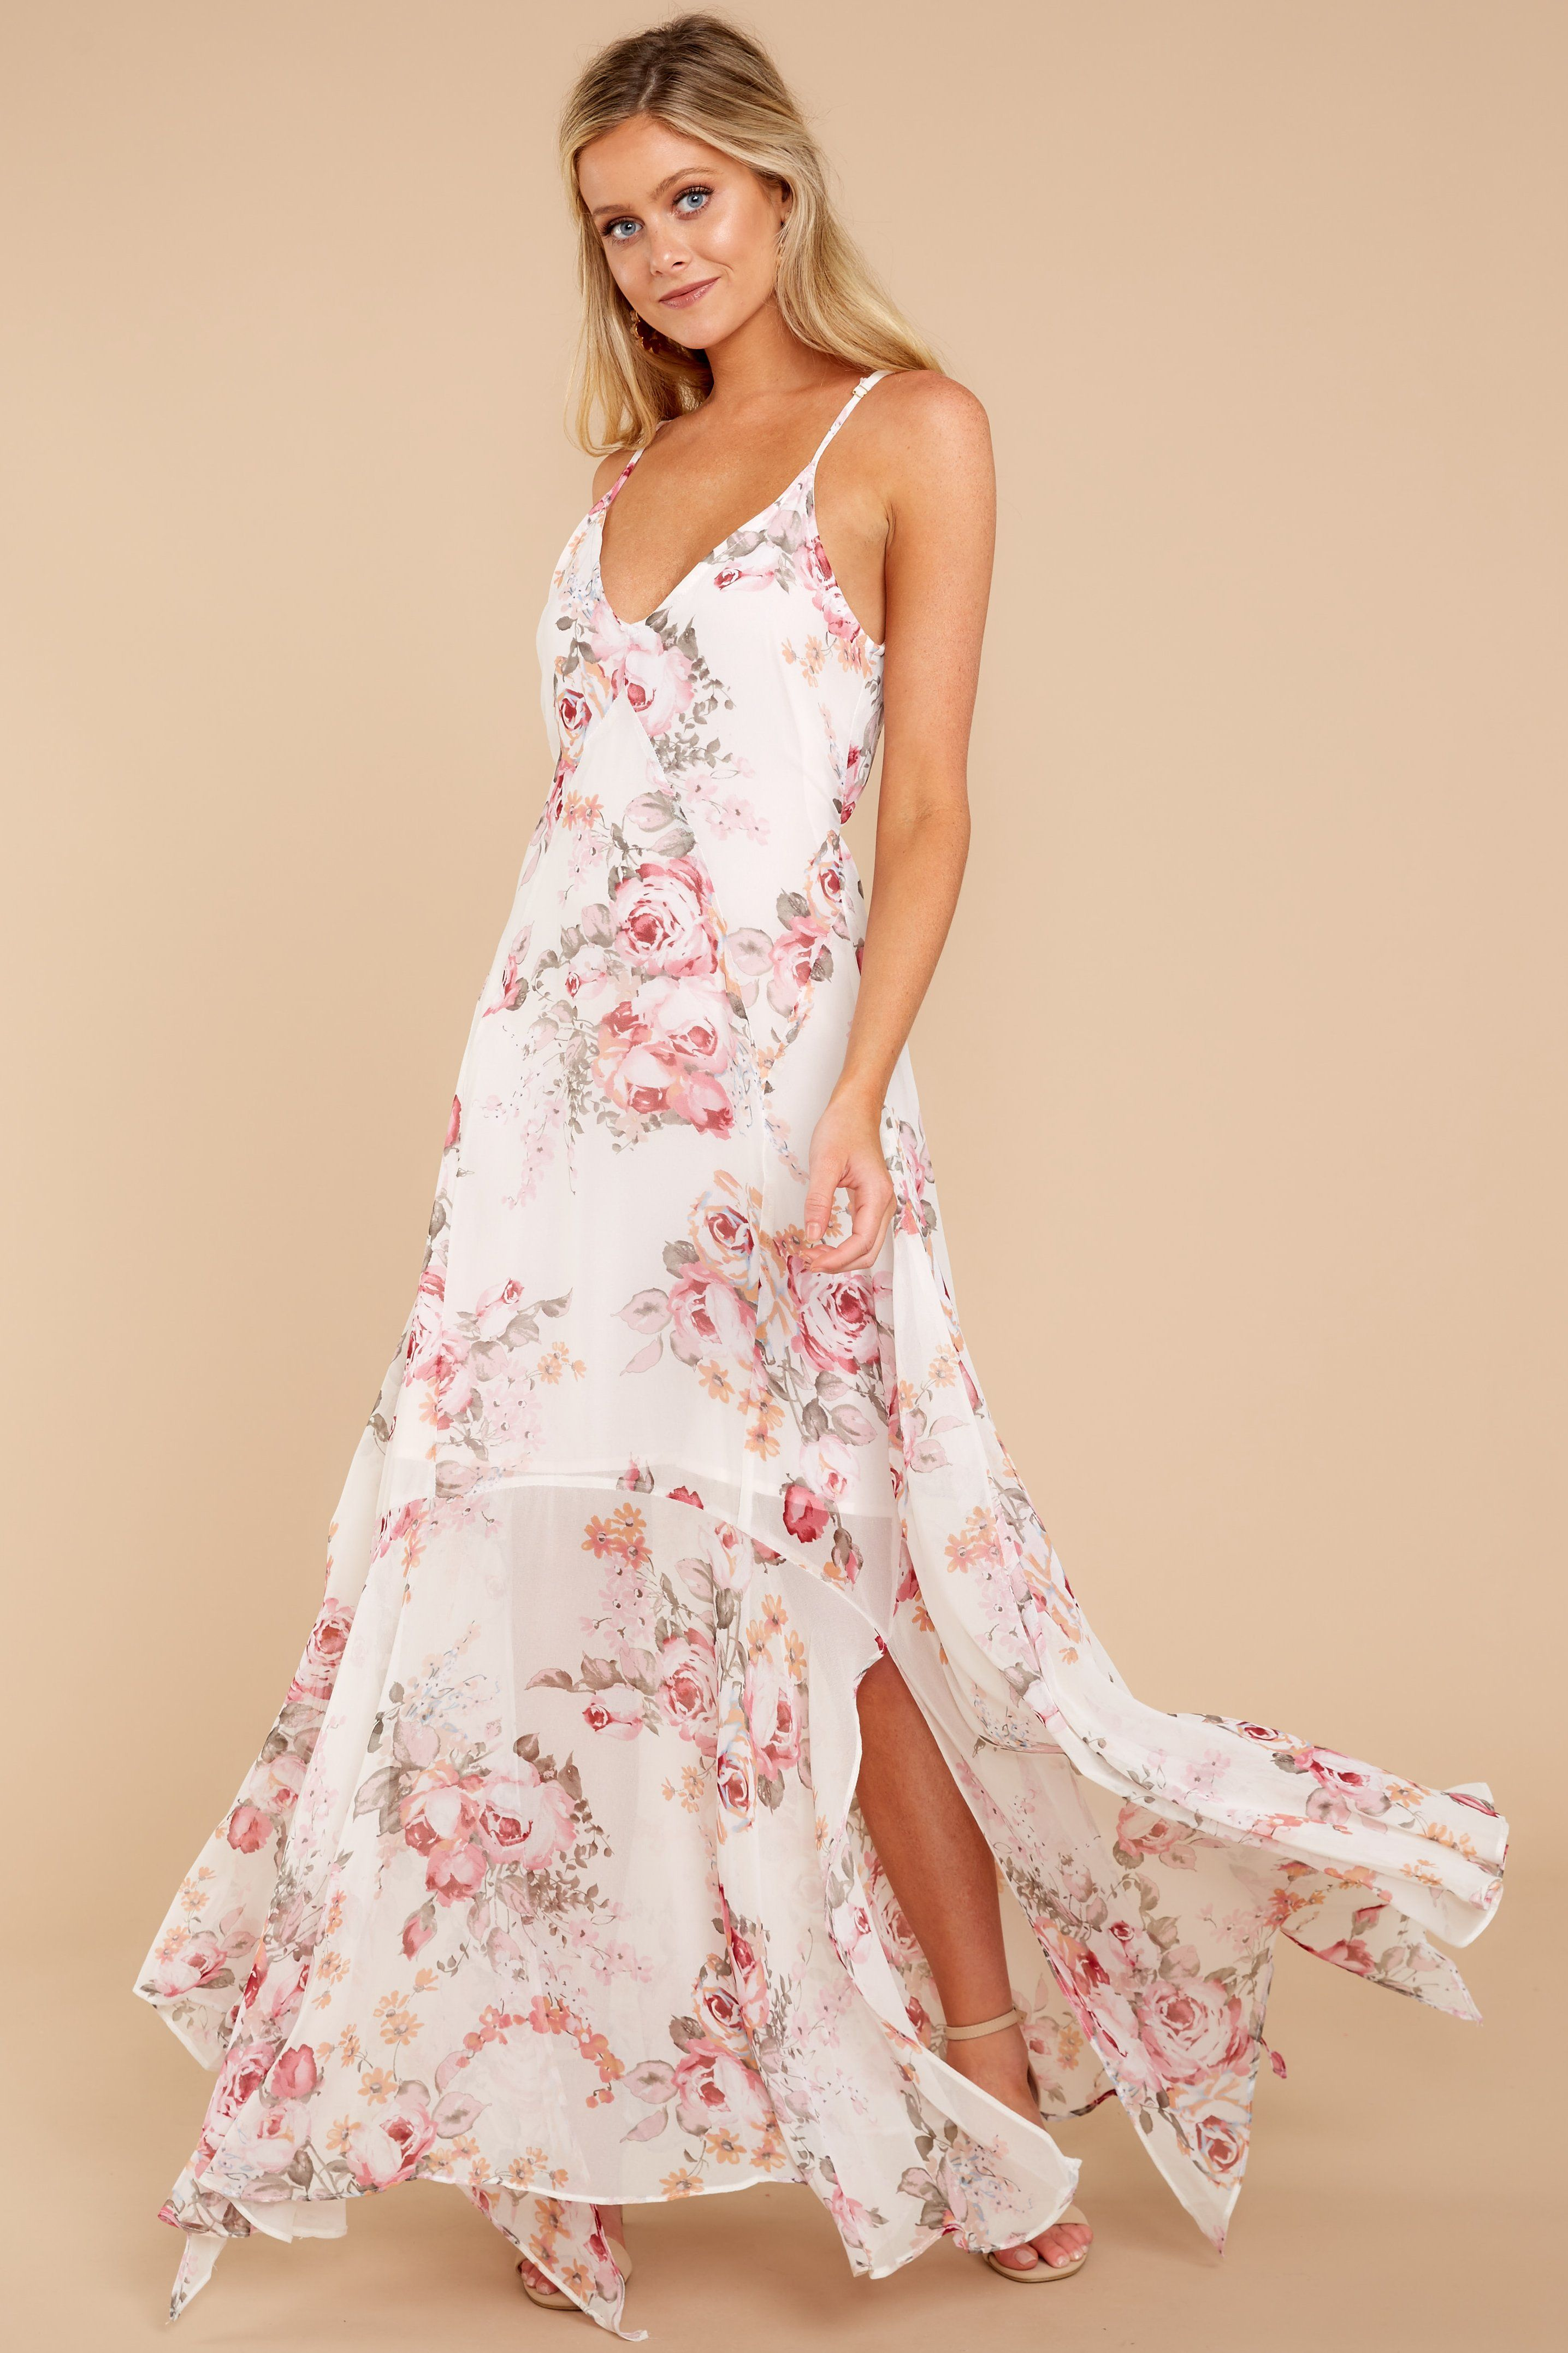 1bc539c4c30 Might Be You Light Pink Floral Print Dress – Red Dress Boutique